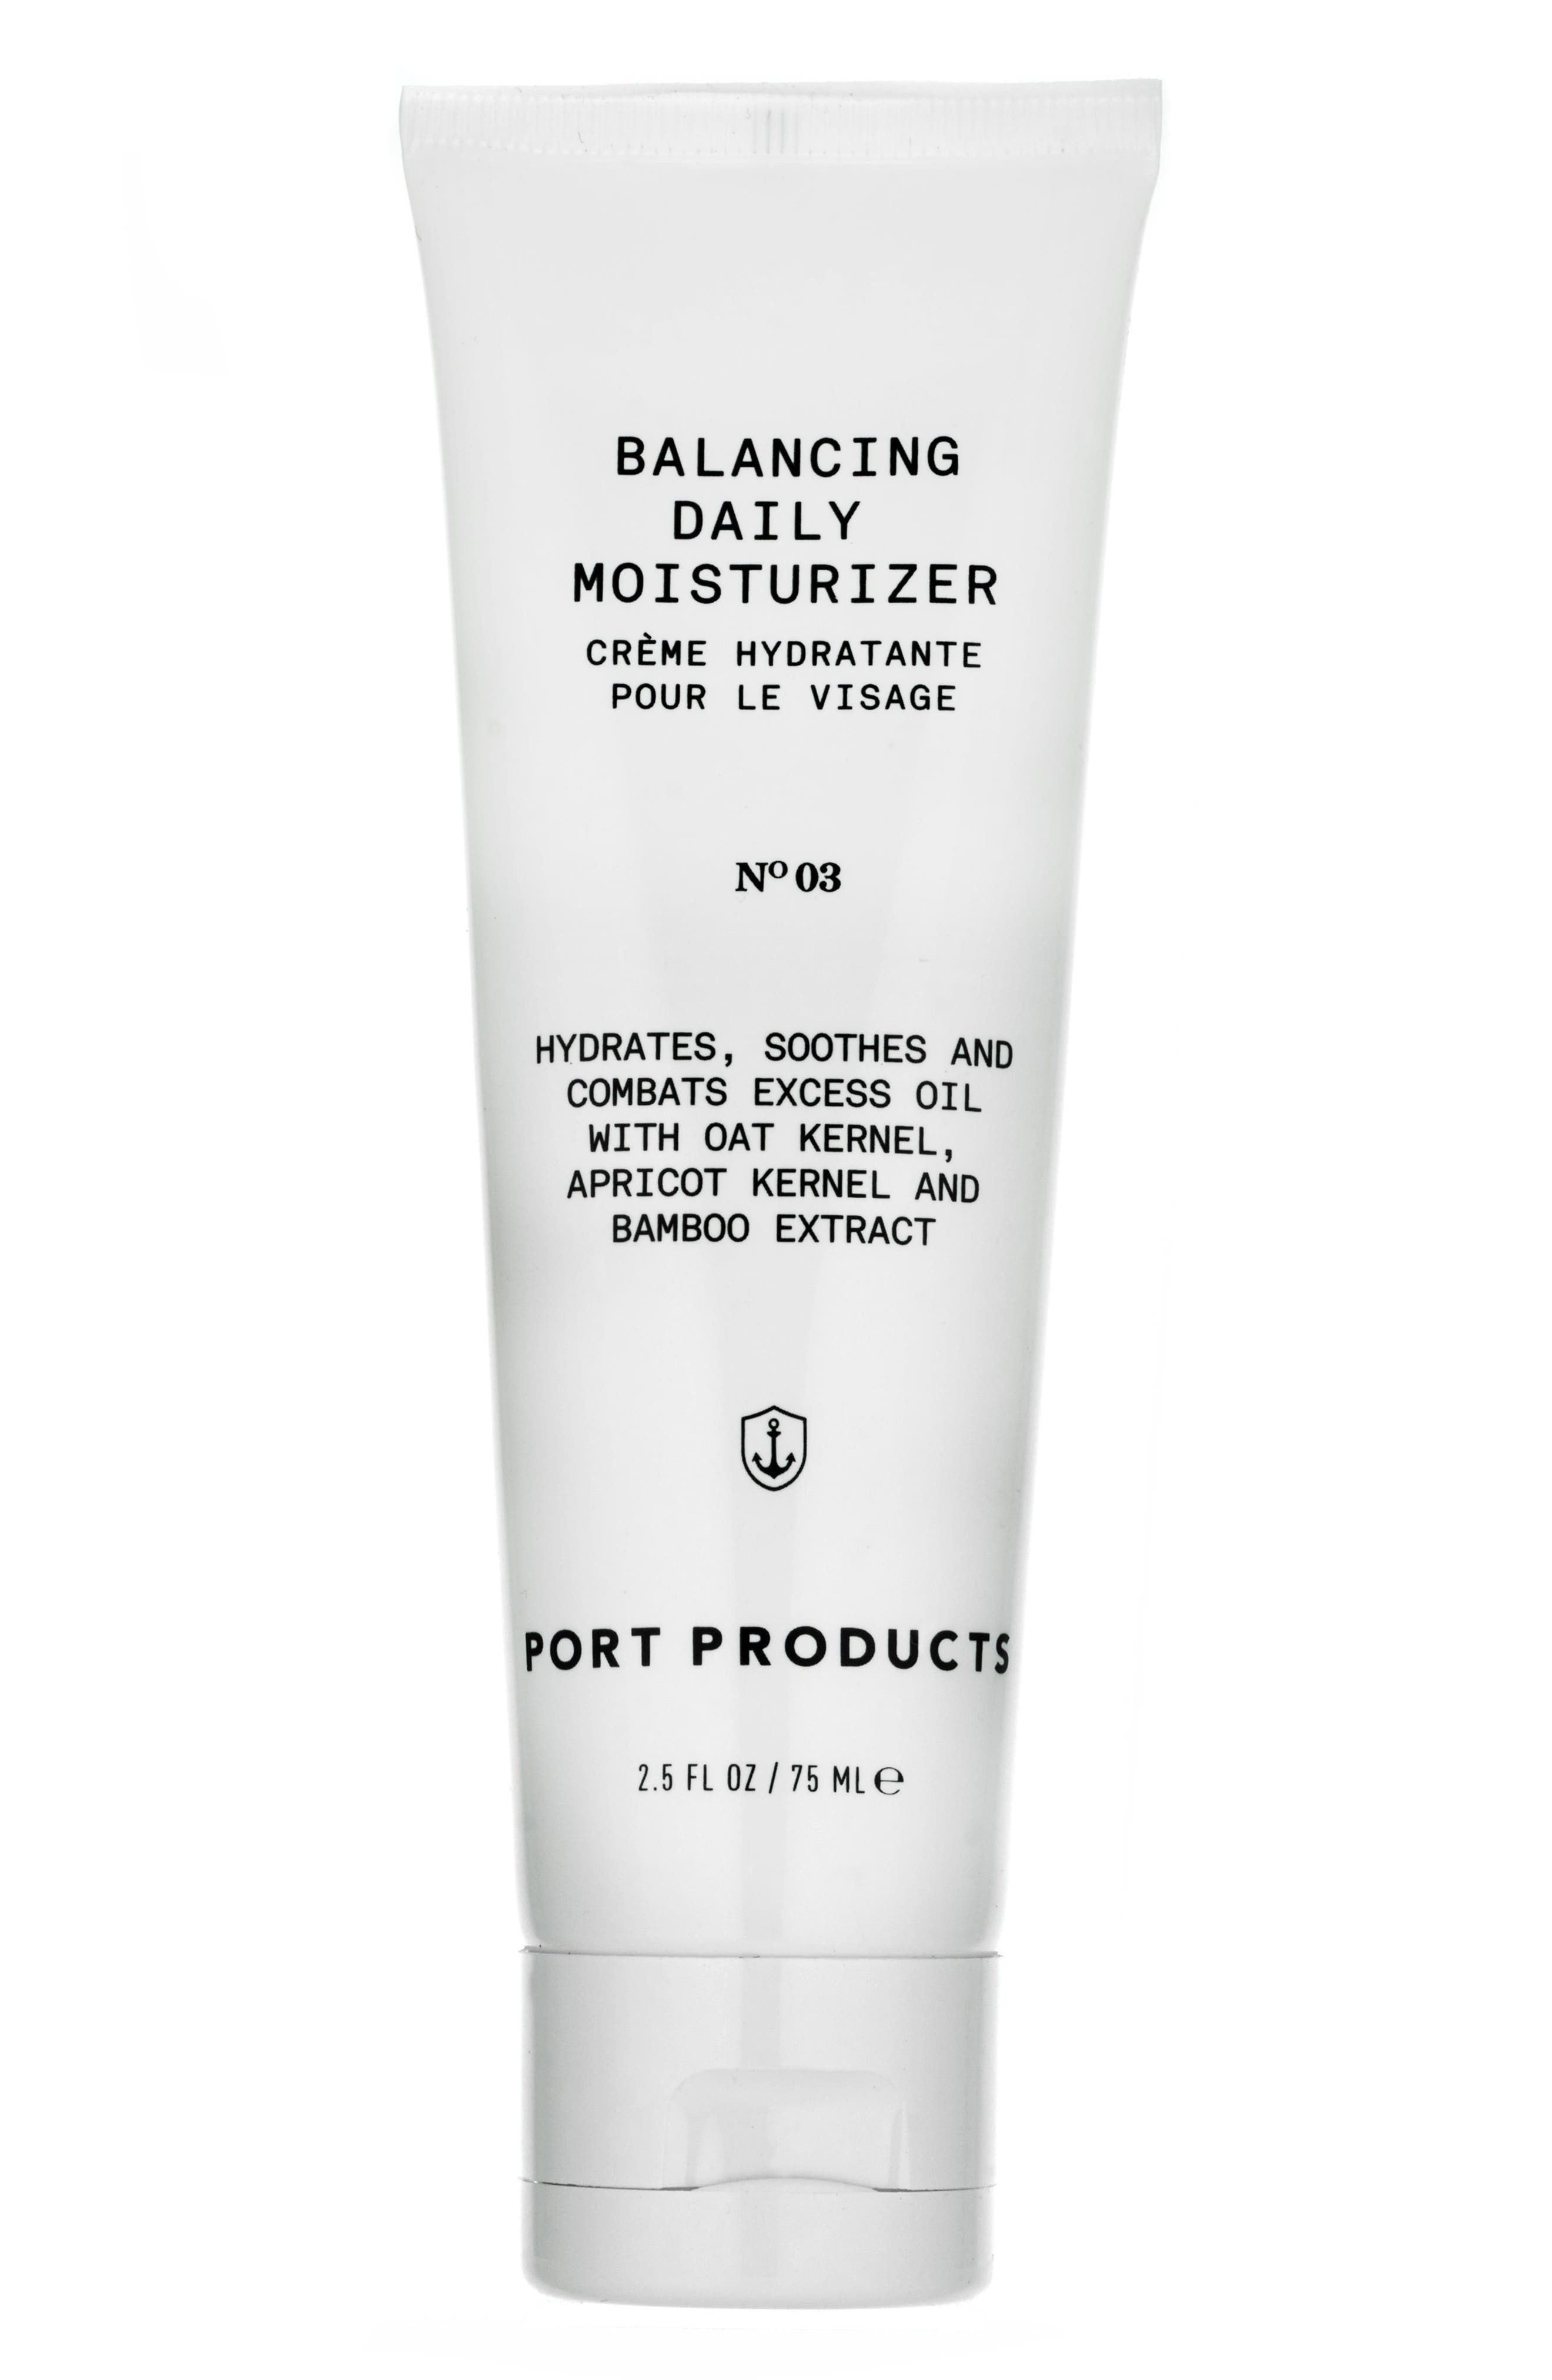 Alternate Image 1 Selected - Port Products Balancing Daily Moisturizer